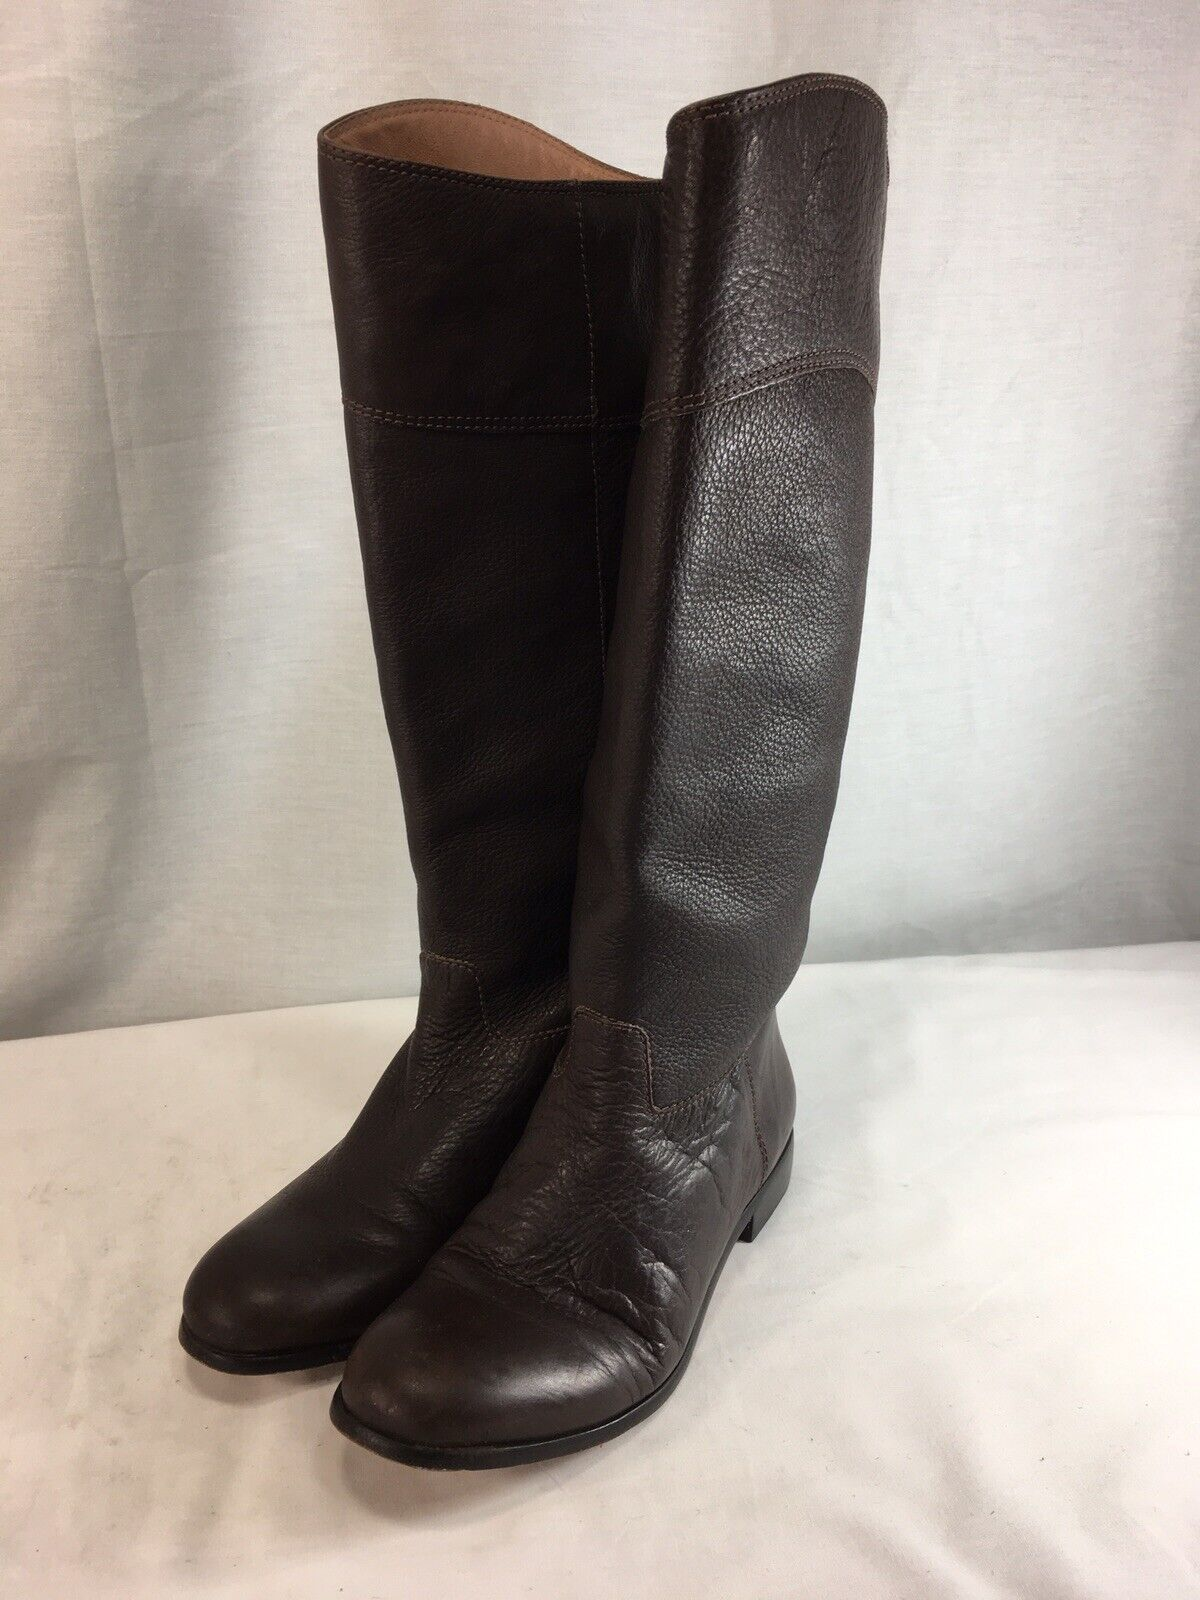 Corso Como Tall Riding Boots Womens 8 Brown Pebbled Leather Pull On Brazil